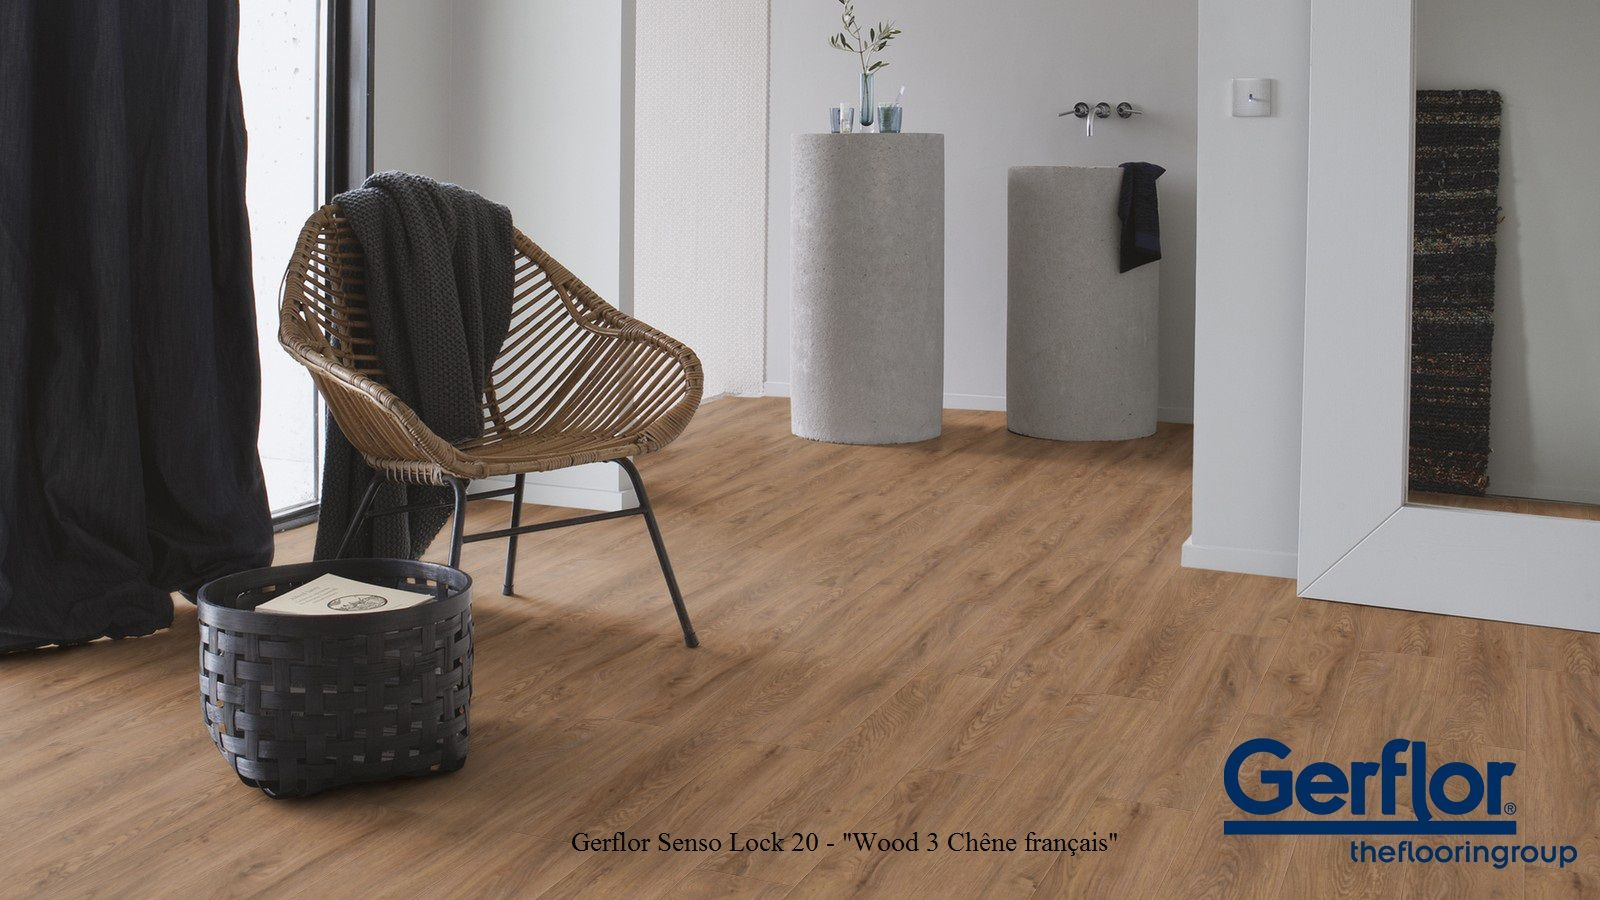 gerflor senso lock 20 0676 wood 3 ch ne fran ais parquet sol parquet et couleurs. Black Bedroom Furniture Sets. Home Design Ideas